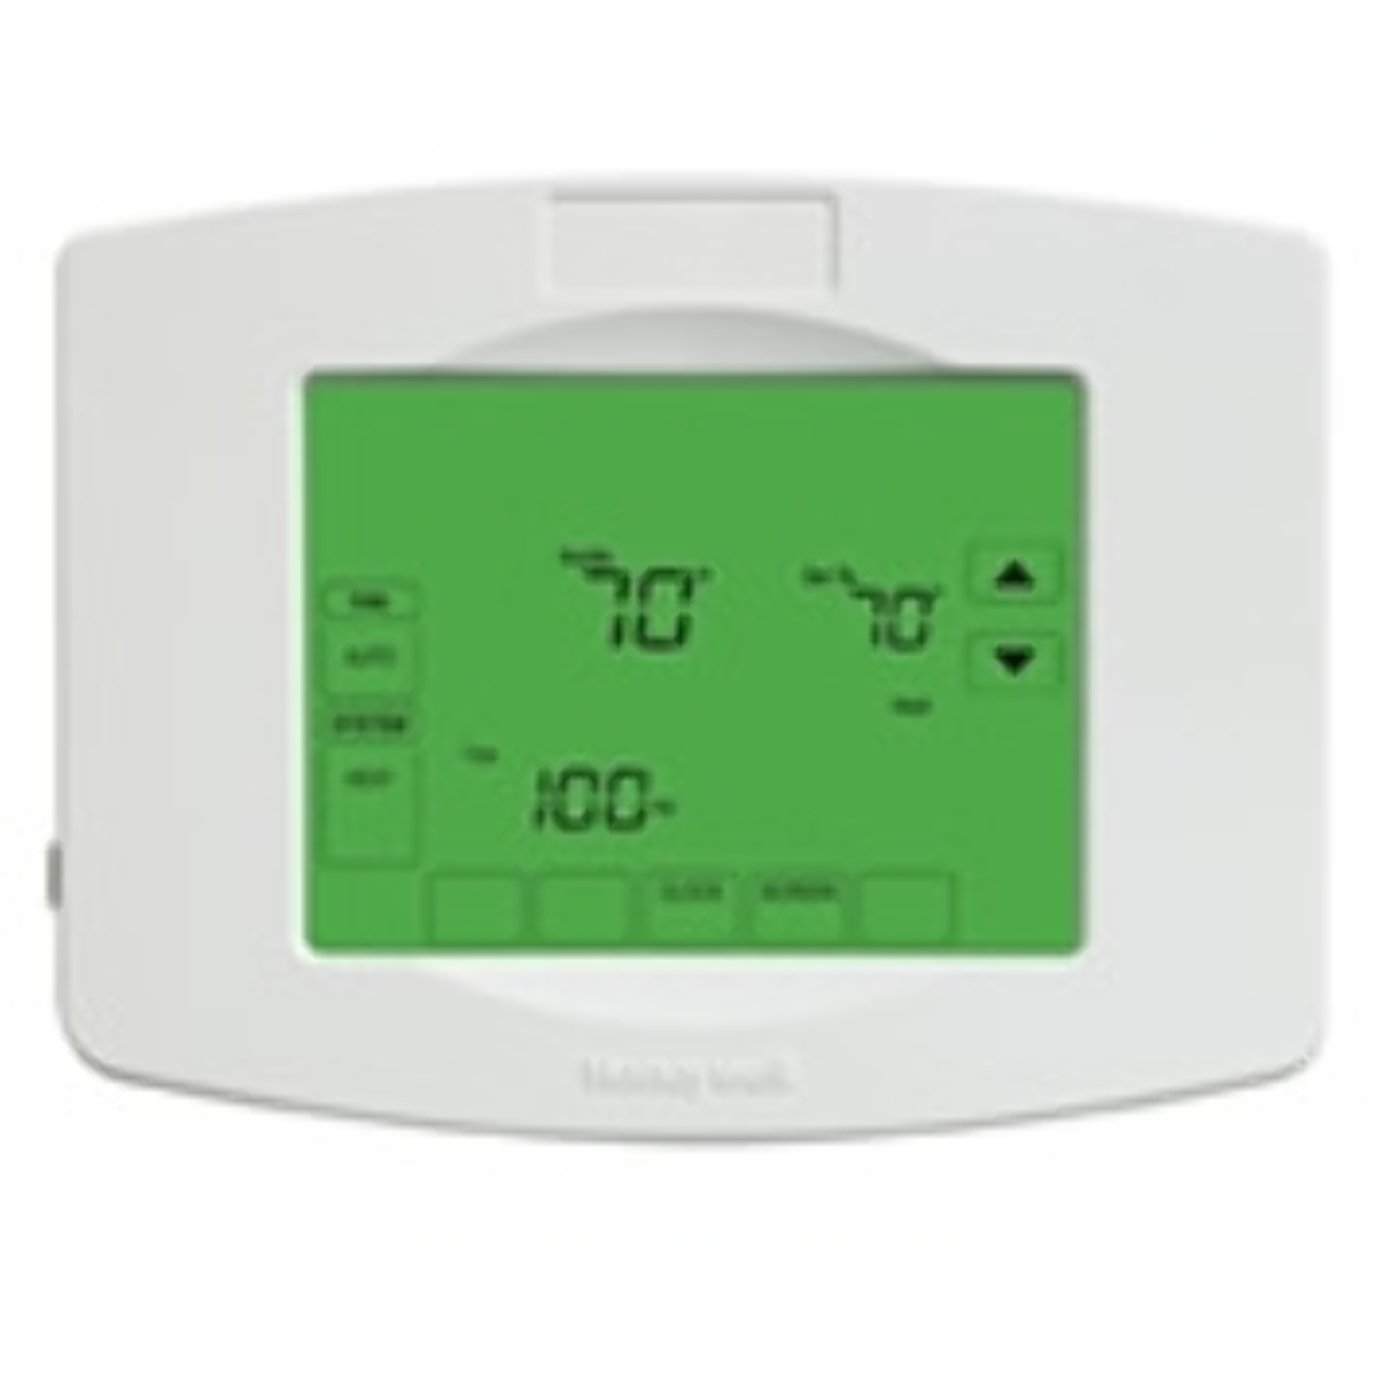 Honeywell Zwstat Z Wave Thermostat Review Zwaveguide Totaline Wiring